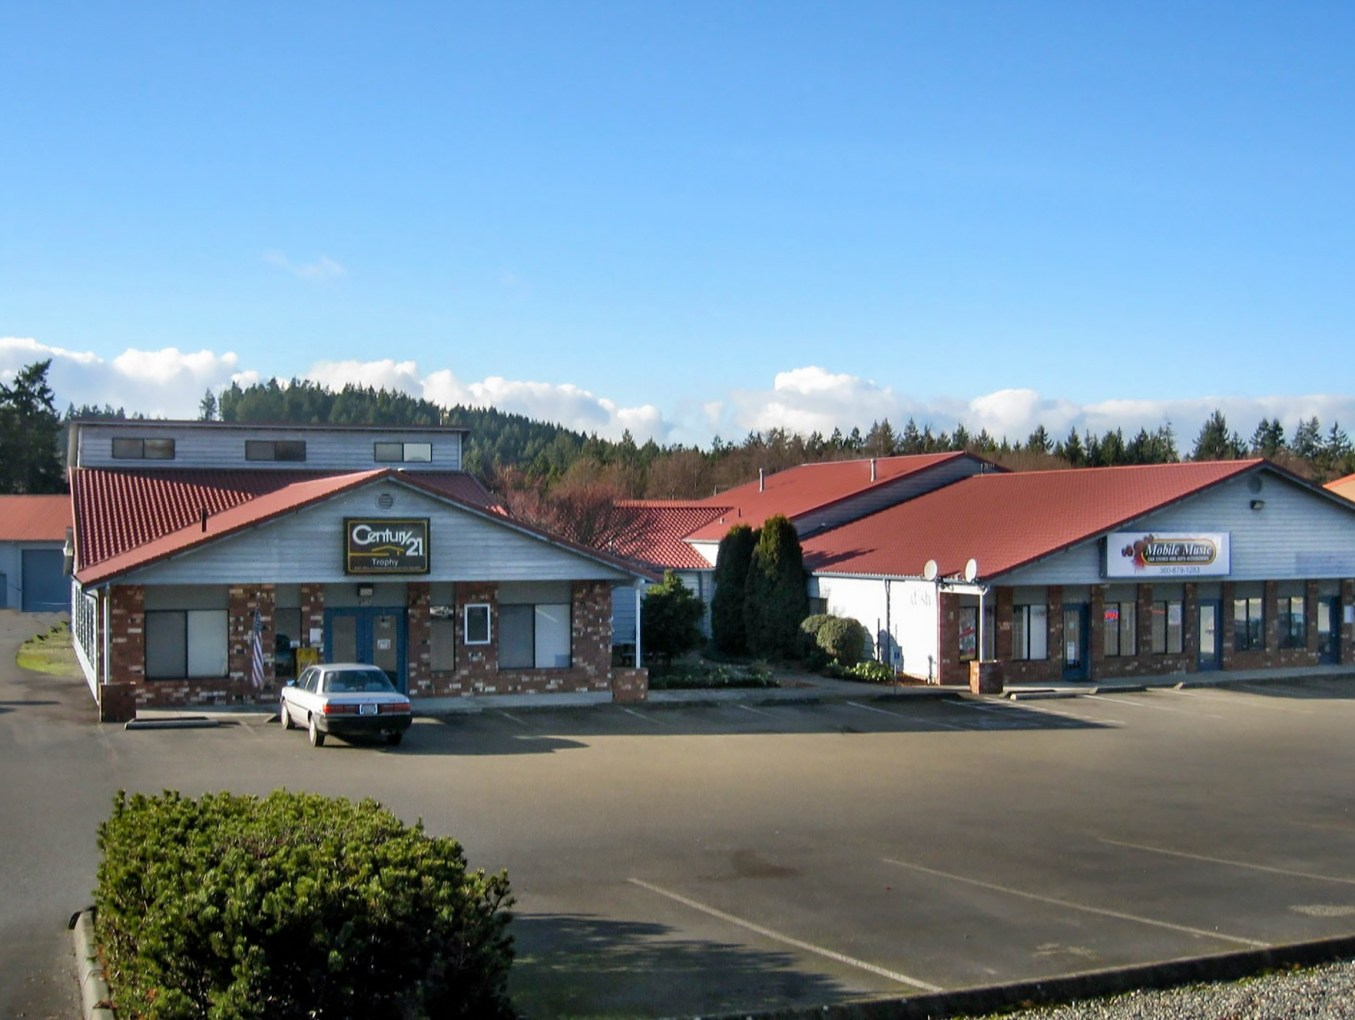 North Whidbey Island Business Park